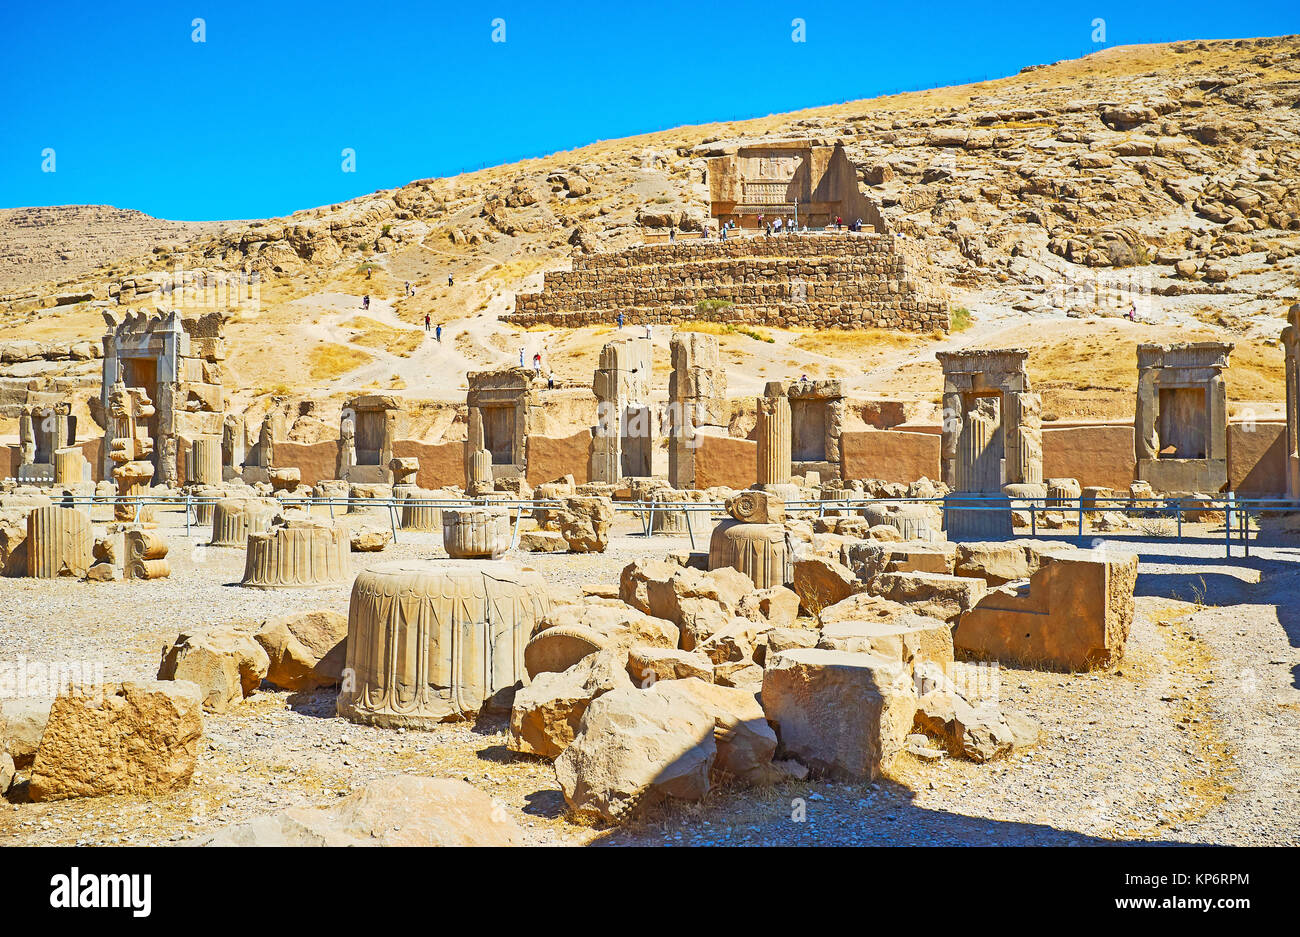 Discover Persepolis archaeological site with its ancient landmarks - tomb on the mountain slope and Hundred Columns - Stock Image